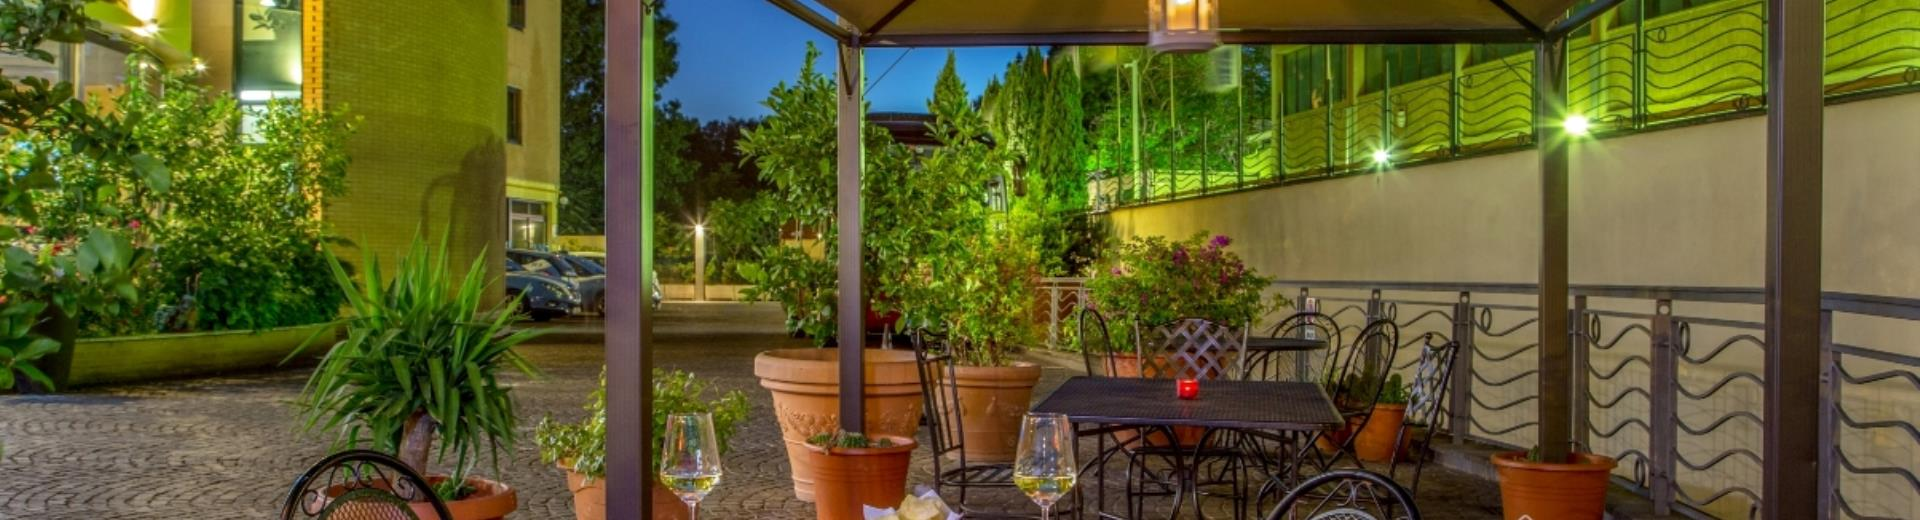 Gazebo and Restaurant terrace  BEST WESTERN Blu Hotel Roma